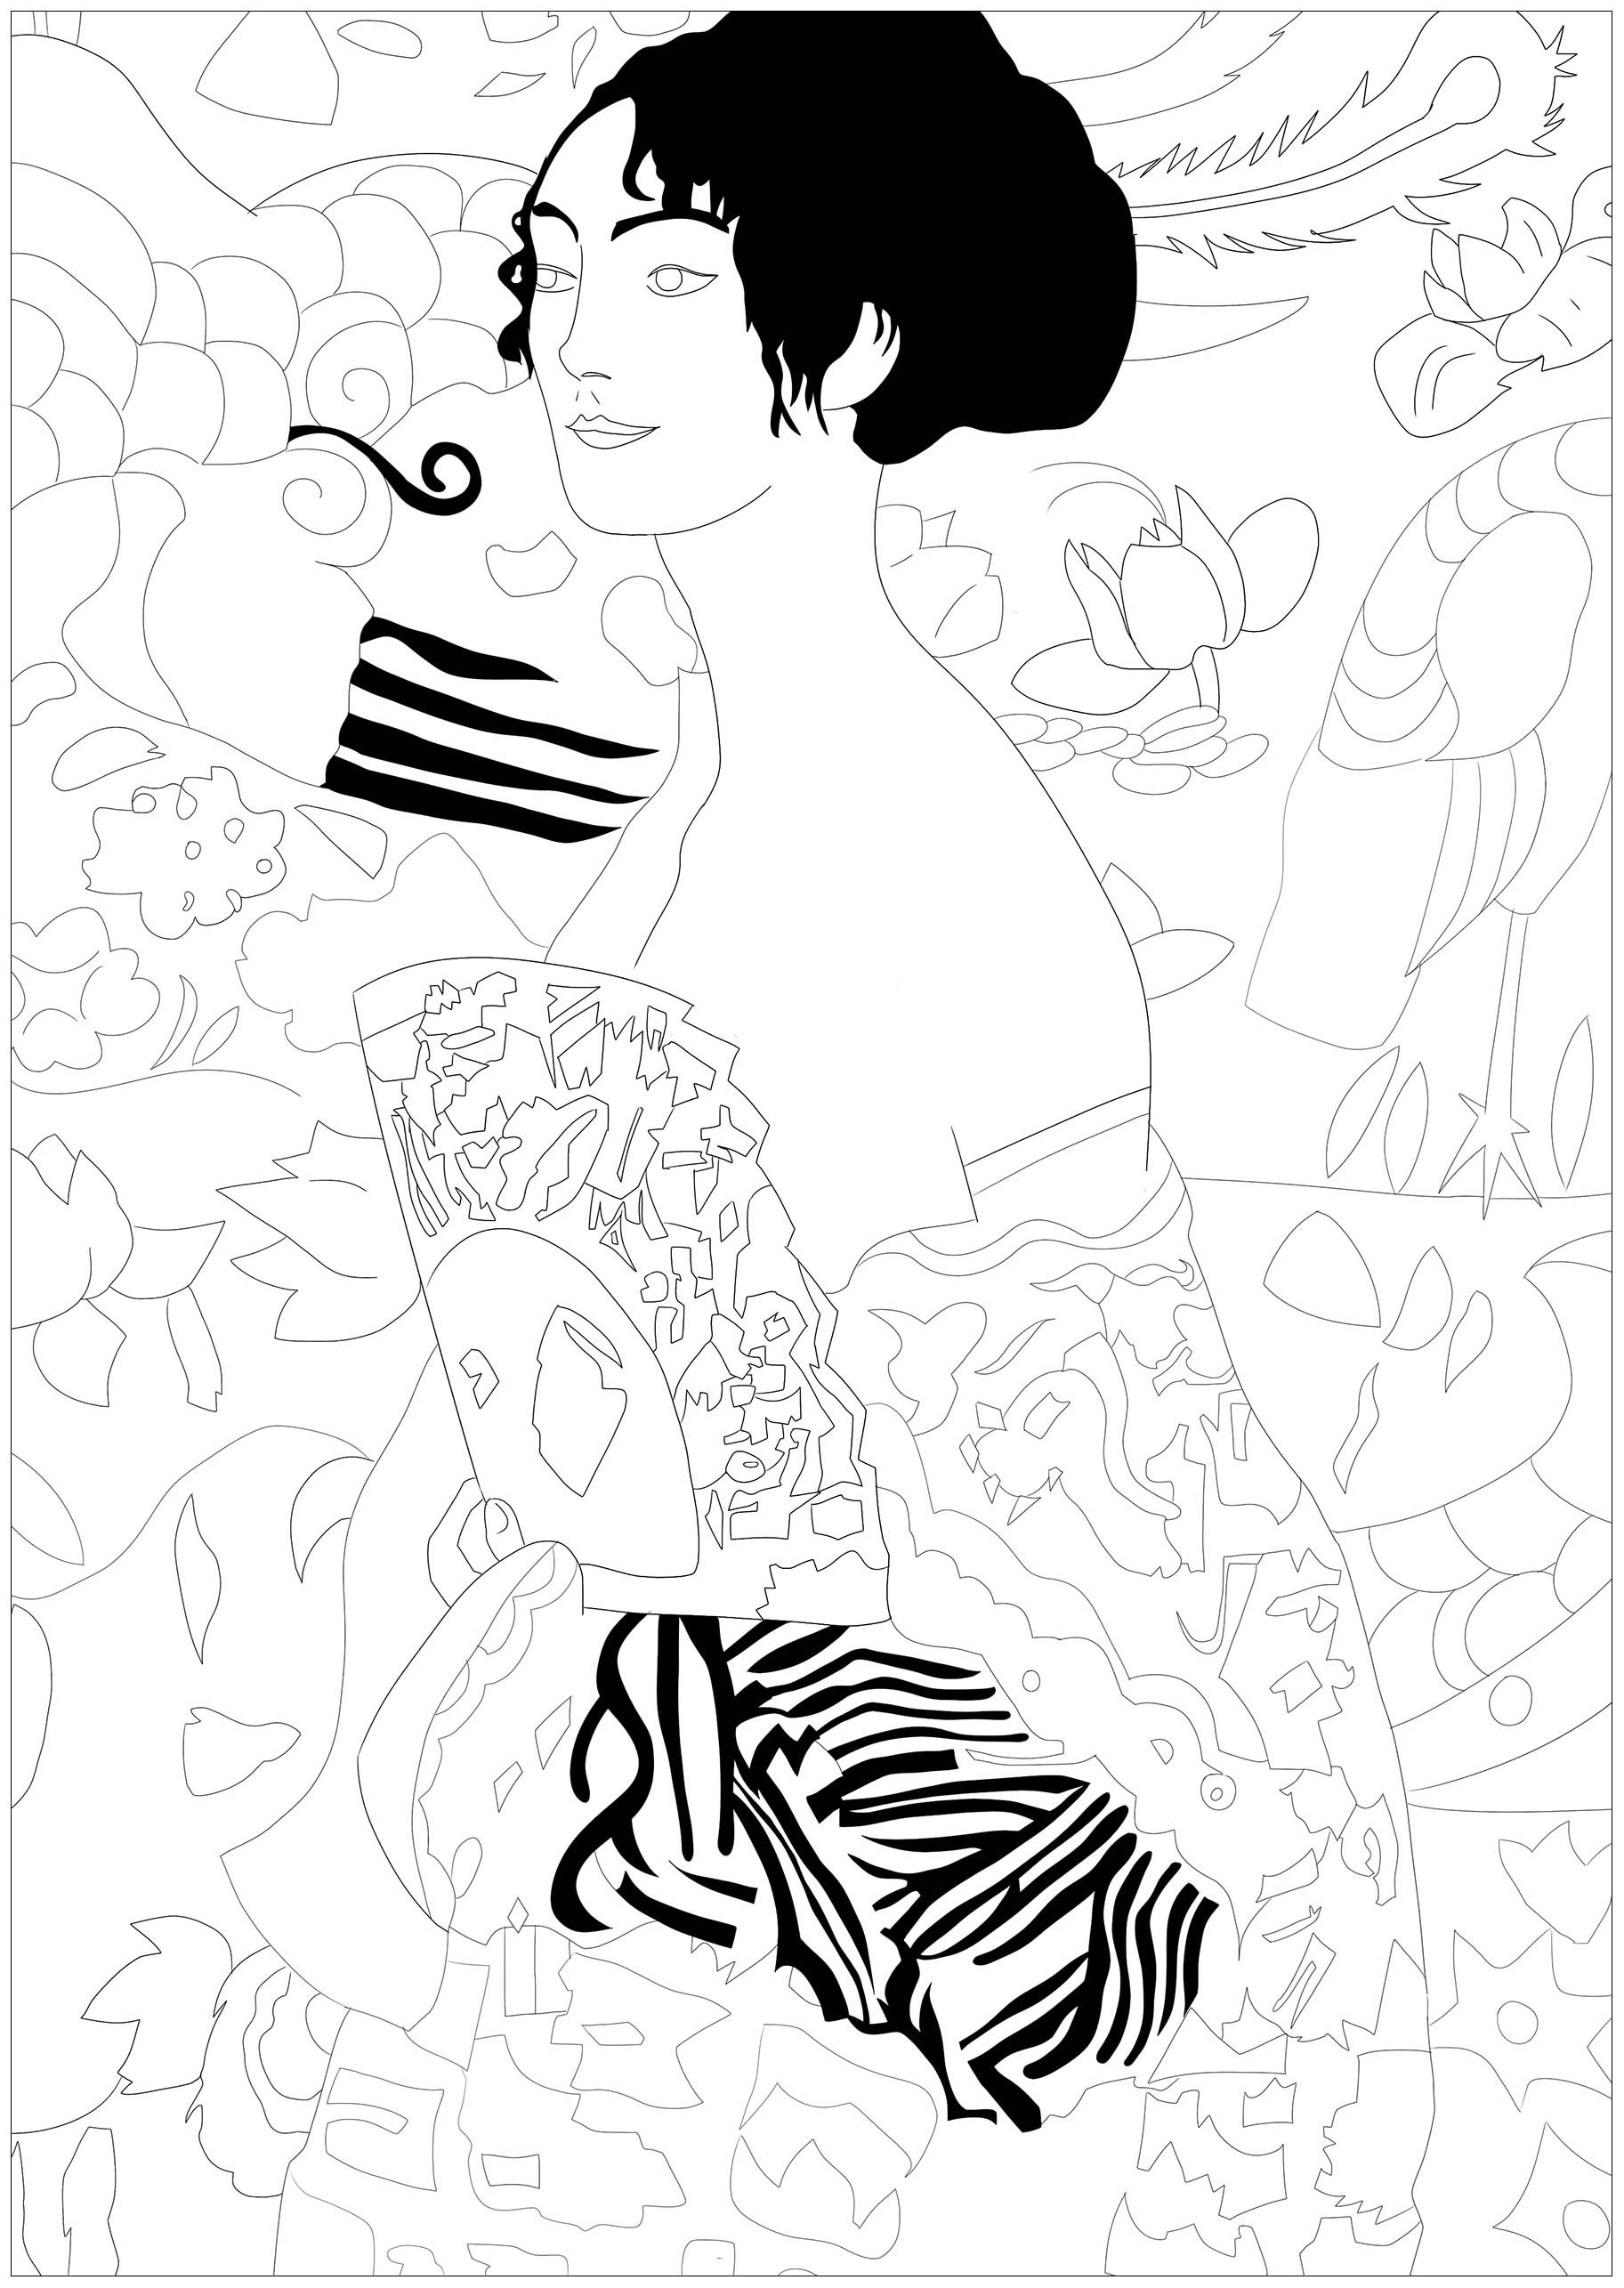 Coloring page inspired by a master piece by Gustav Klimt : Lady with fan